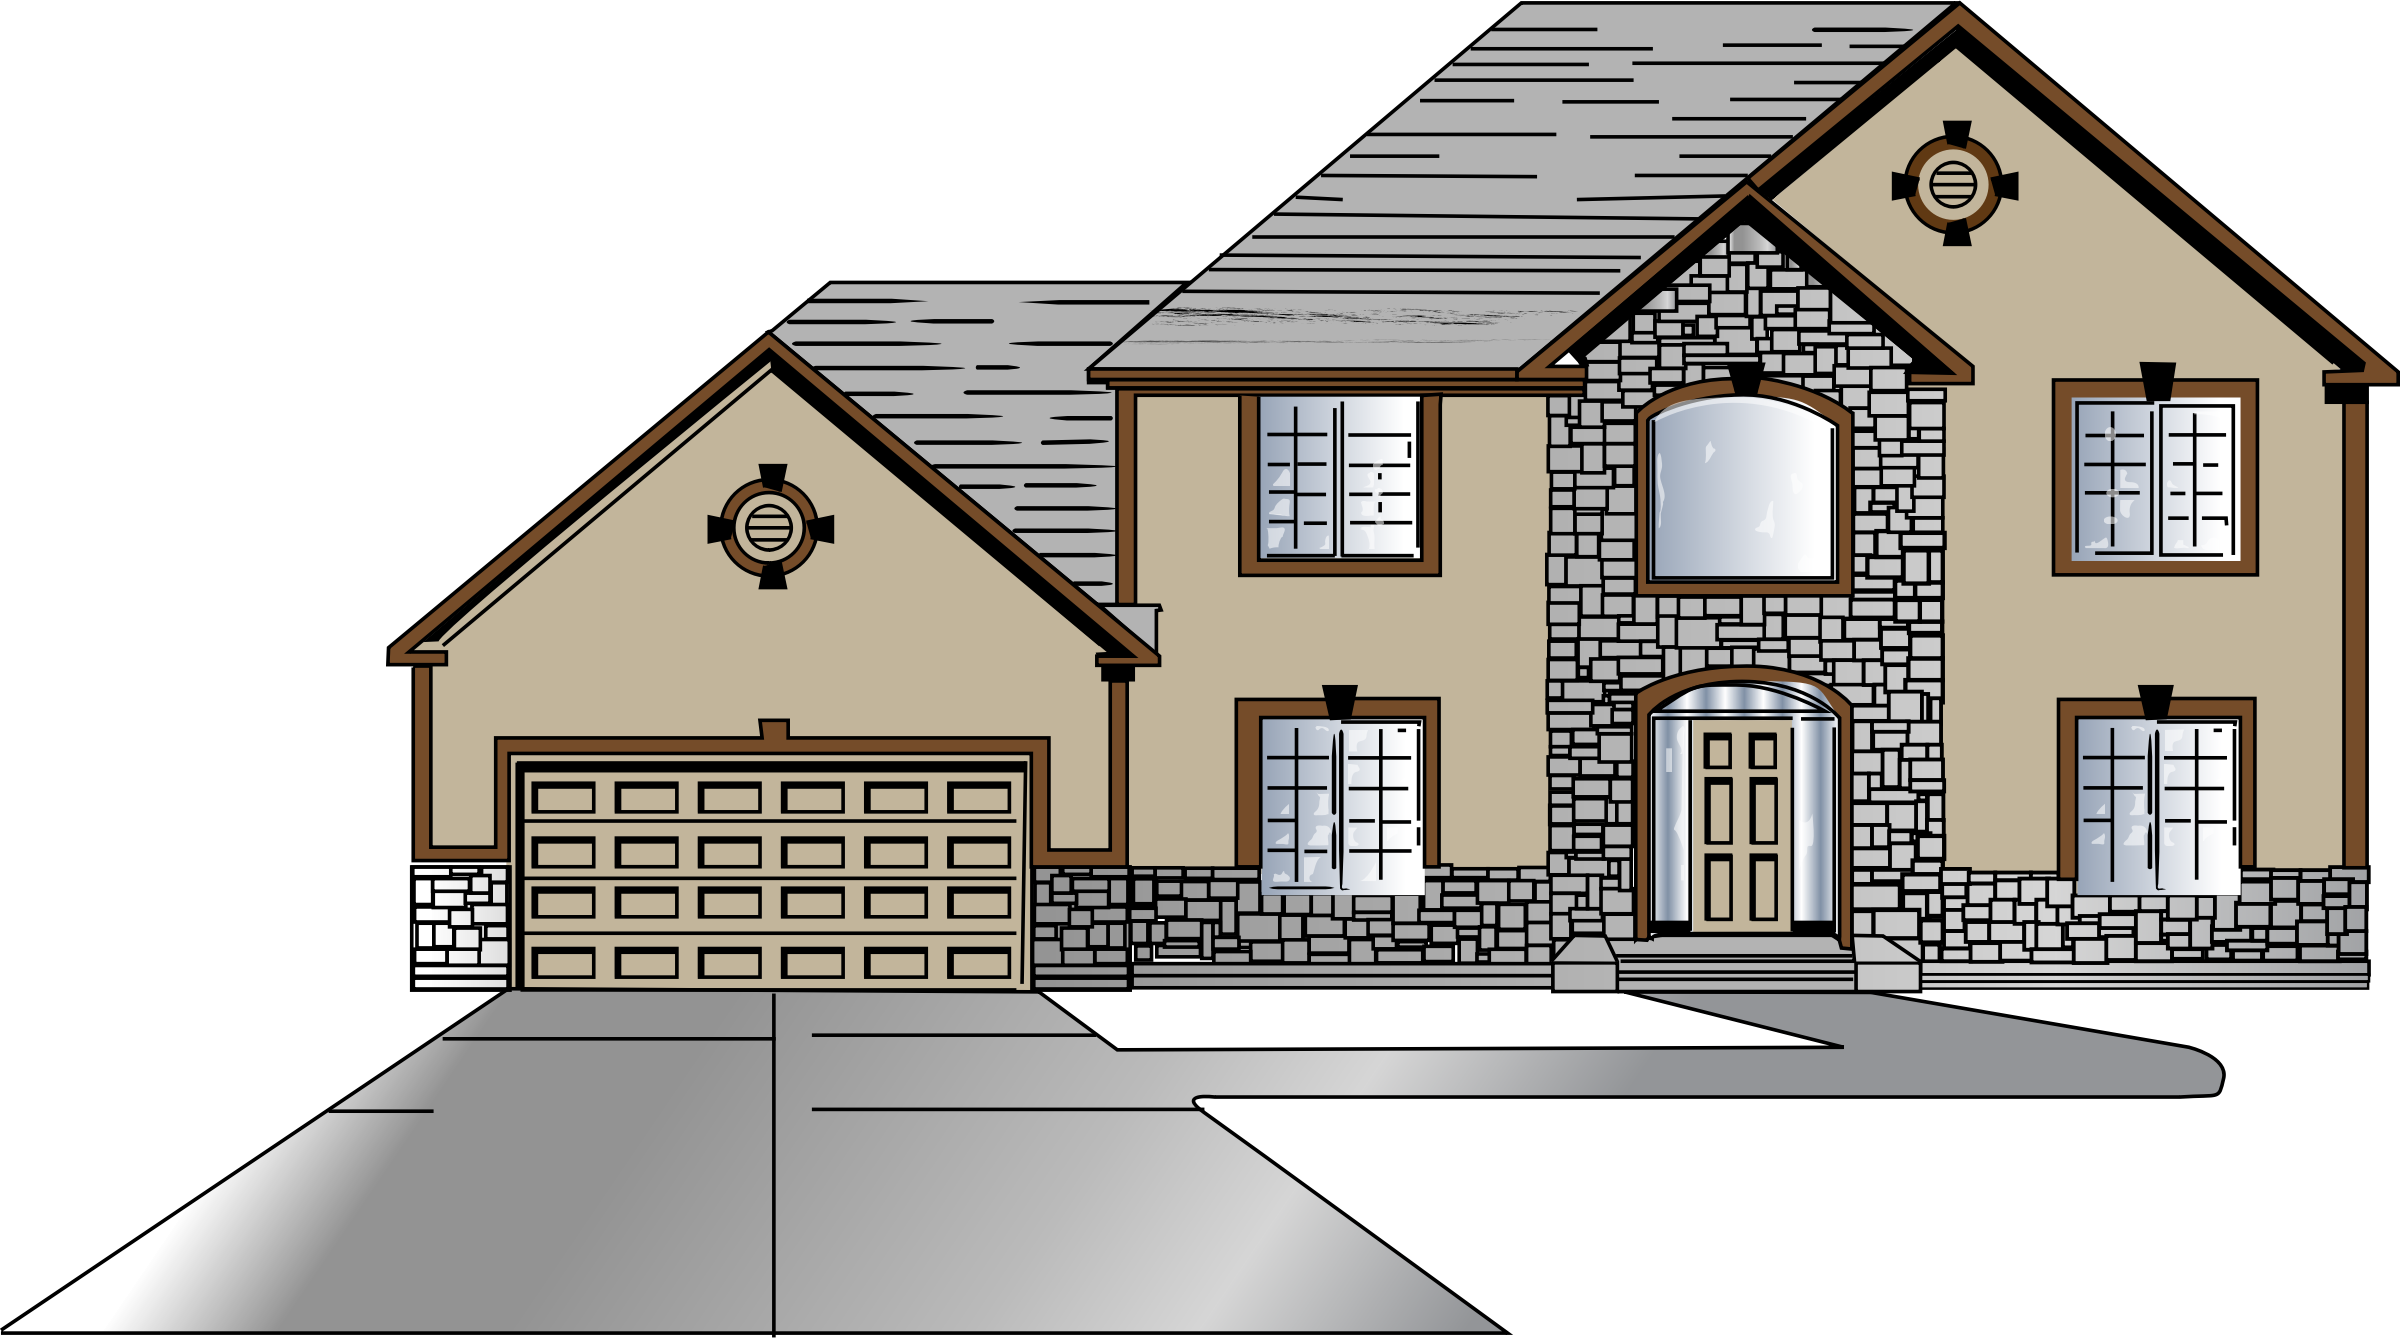 Building design png. House front icons free